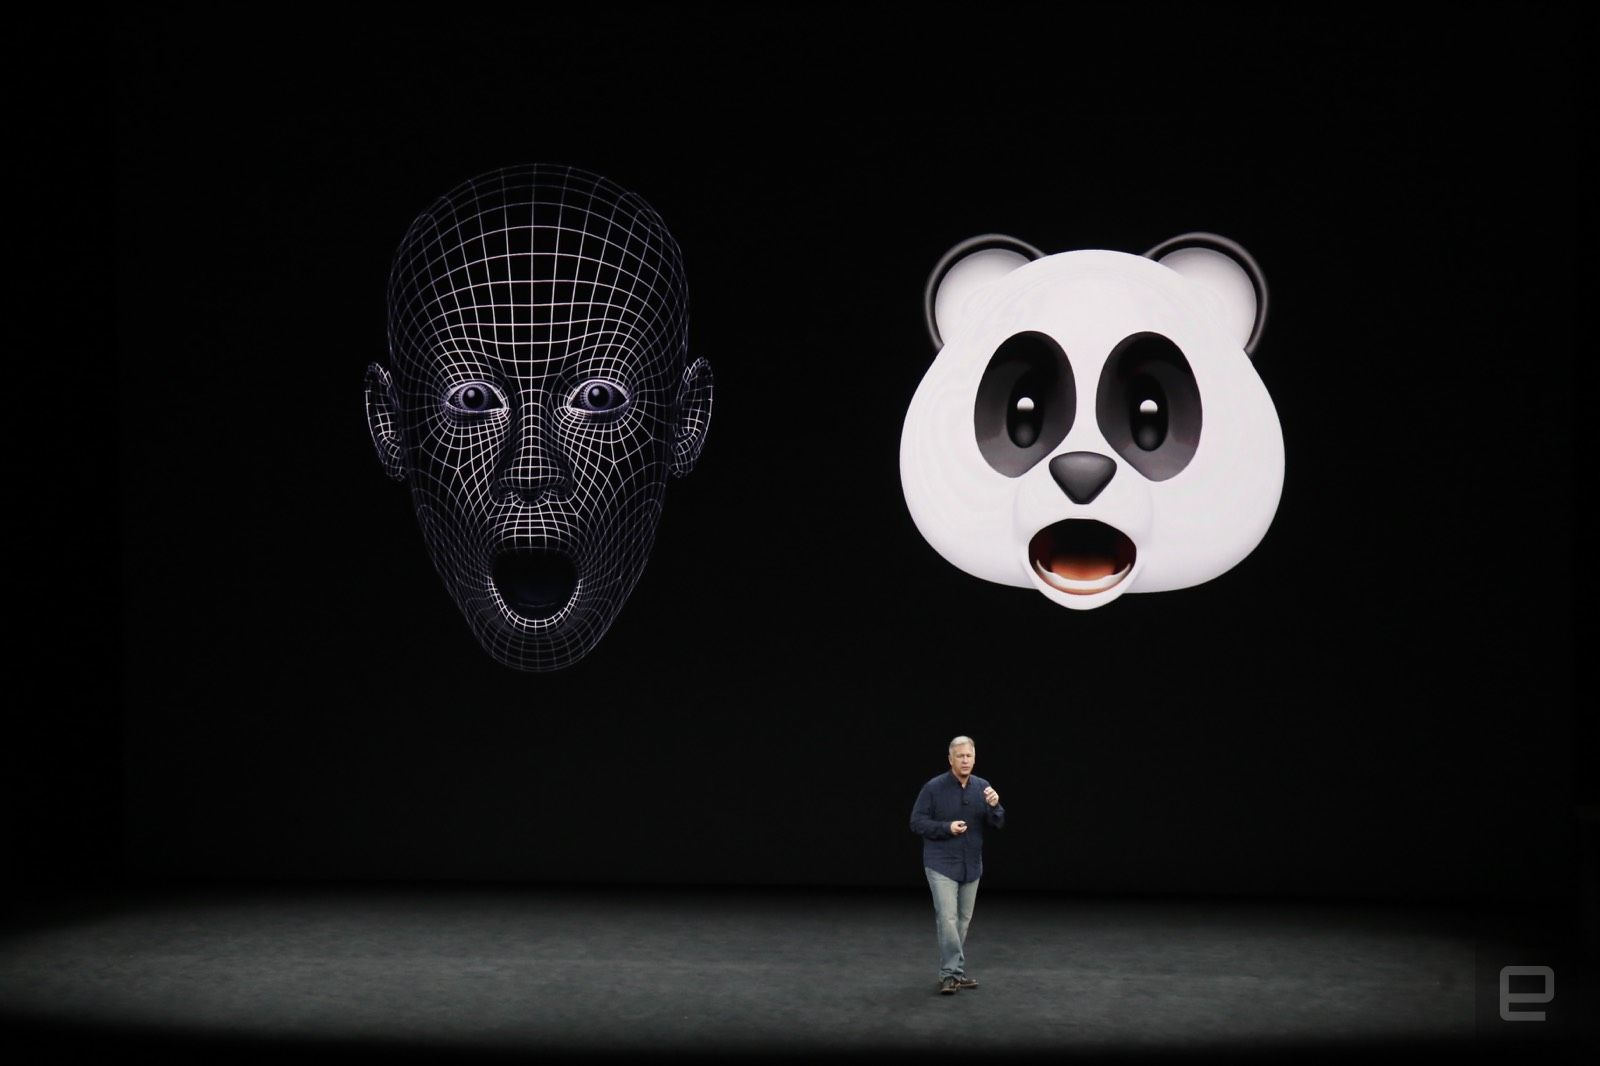 Live From Apple S Iphone X Event Animated Emojis Iphone Event Emoji